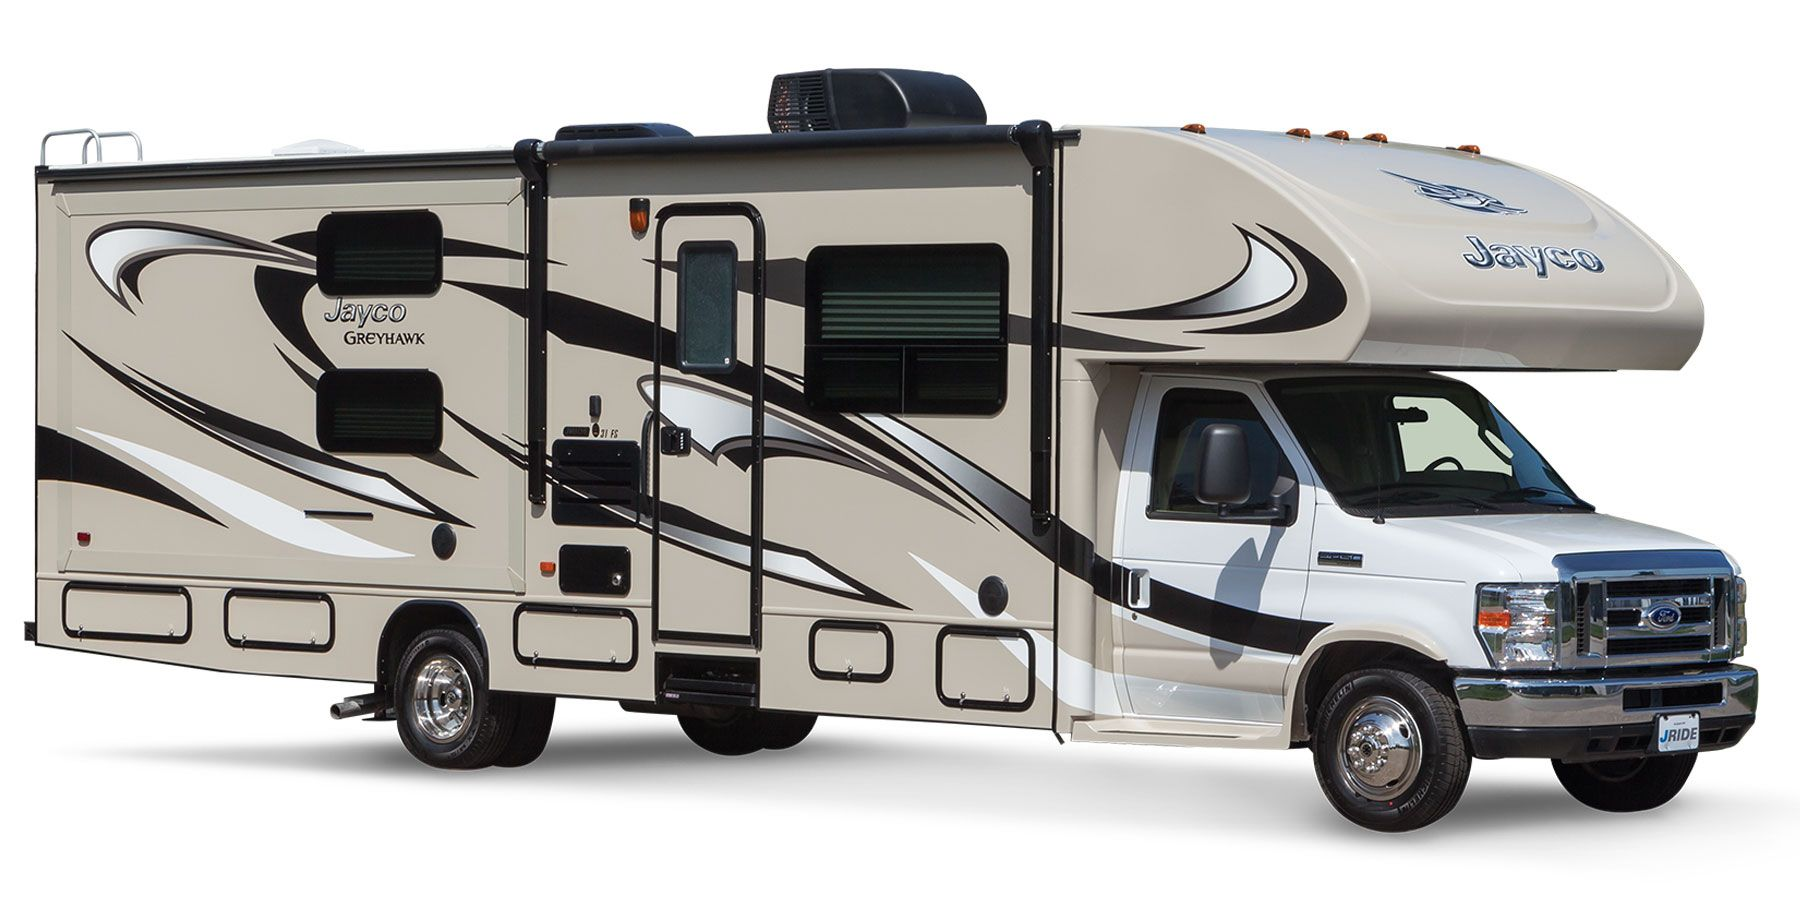 Owasco RV Rentals - Rent an RV or Trailer! - RV Rentals